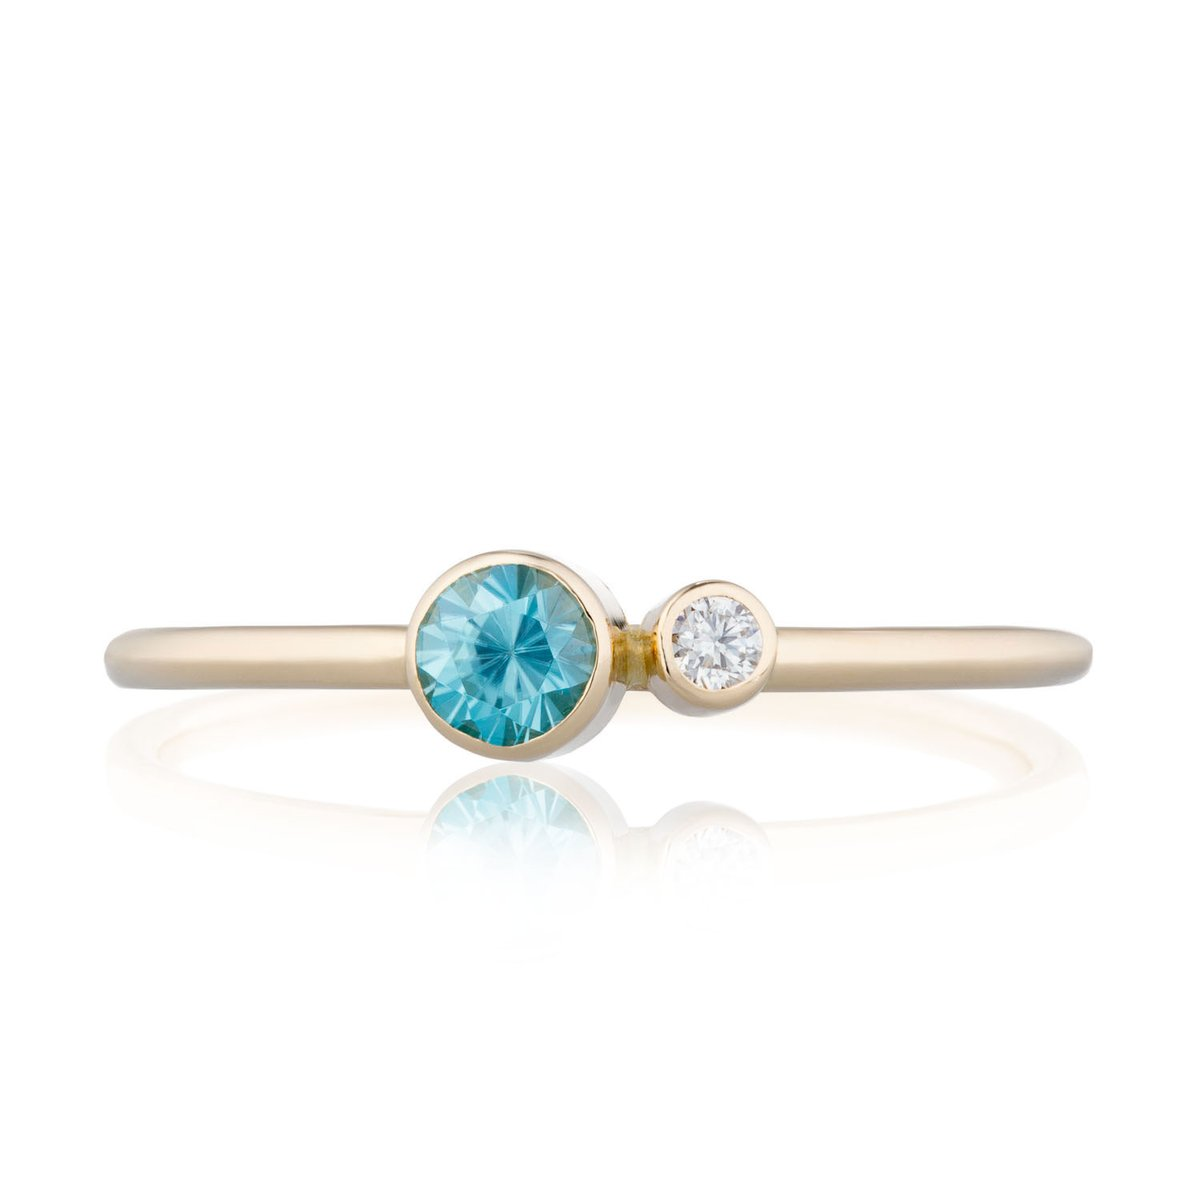 The sophisticated and stackable Blue Zircon Diamond Kiss Ring pairs a blue zircon with a dainty diamond. Made with a conflict-free Canadian diamond and SCS certified recycled 14K gold.